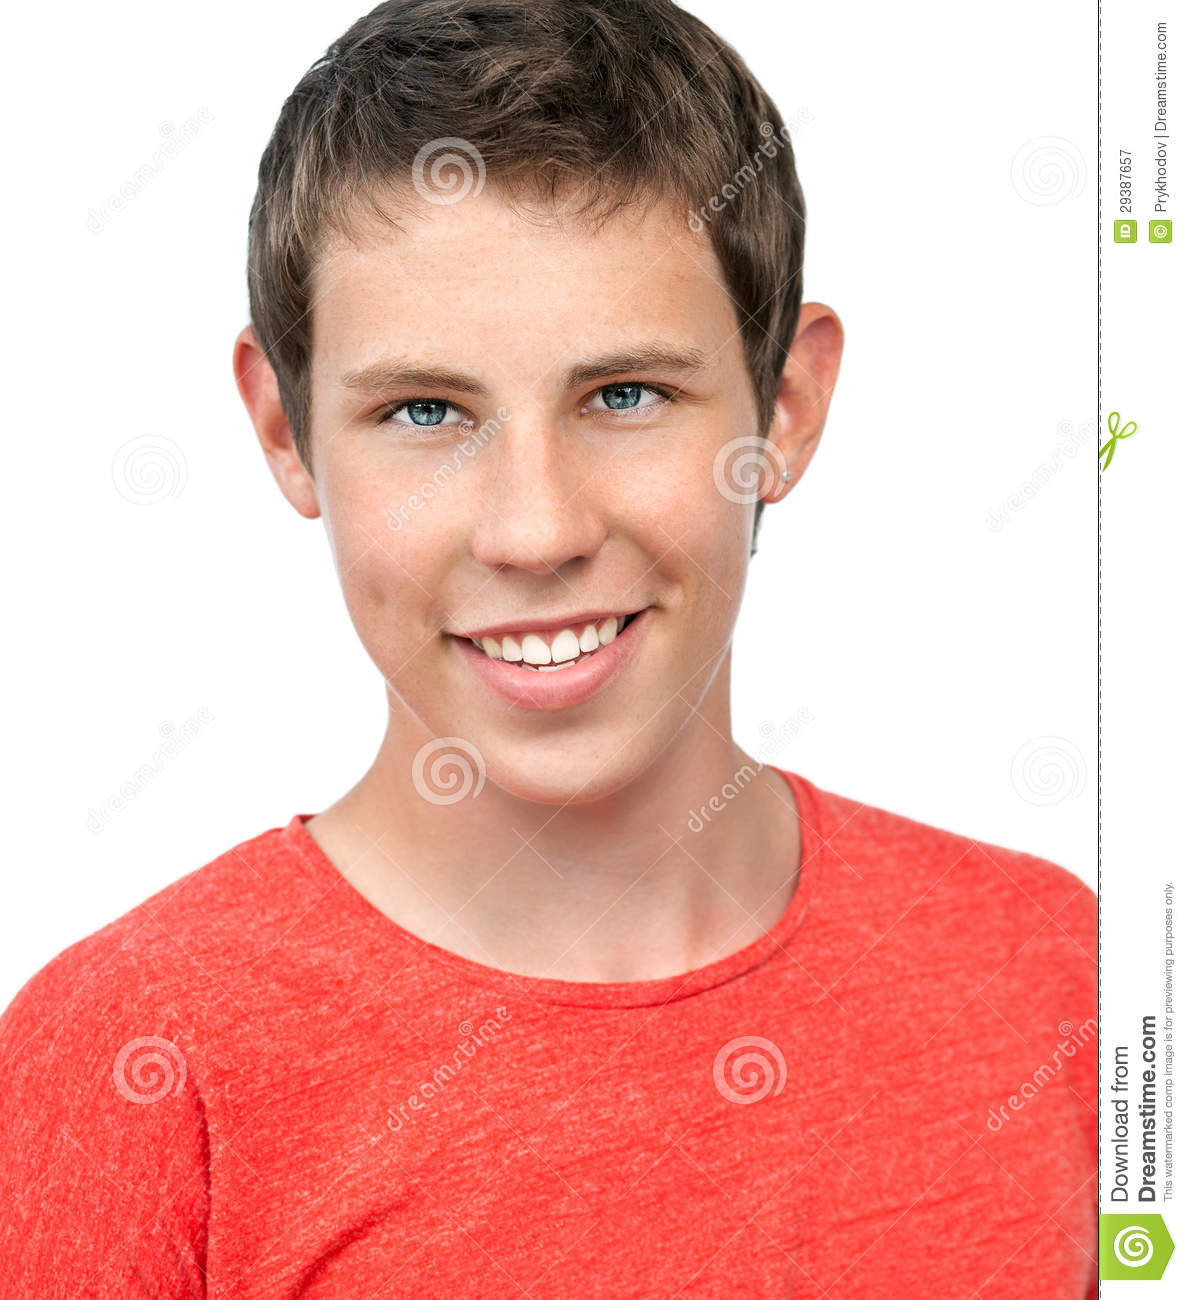 Isolated portrait for a young boy smiling